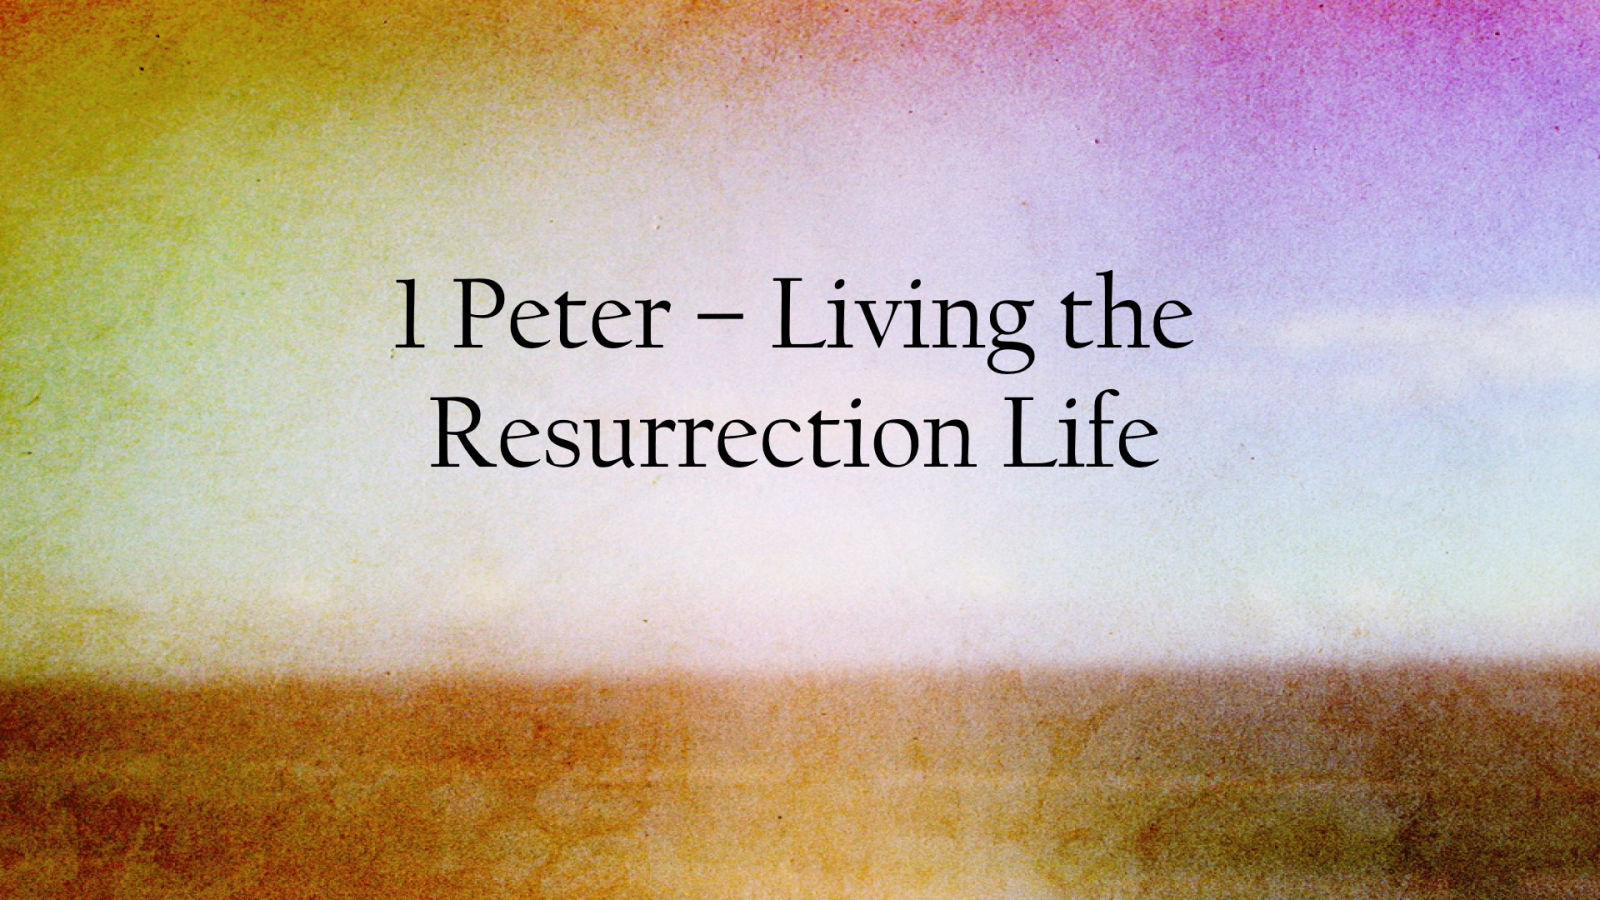 1 Peter - Living the Resurrection Life